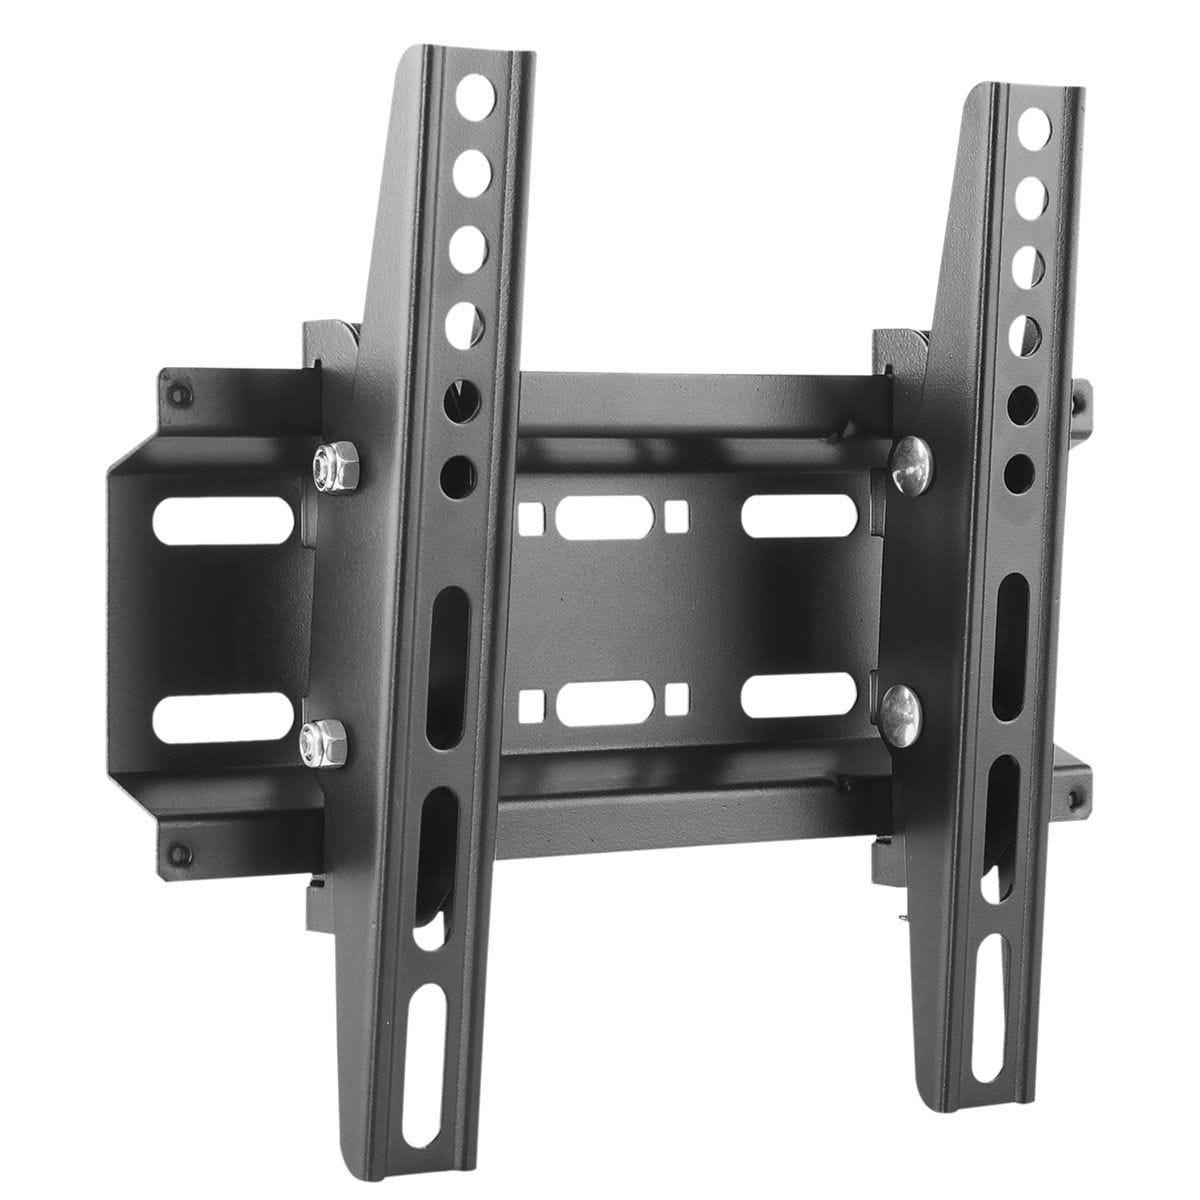 SBOX Wall Mount with Tilt PLB-2522T for 23-43inch Flat Panel TV- Black